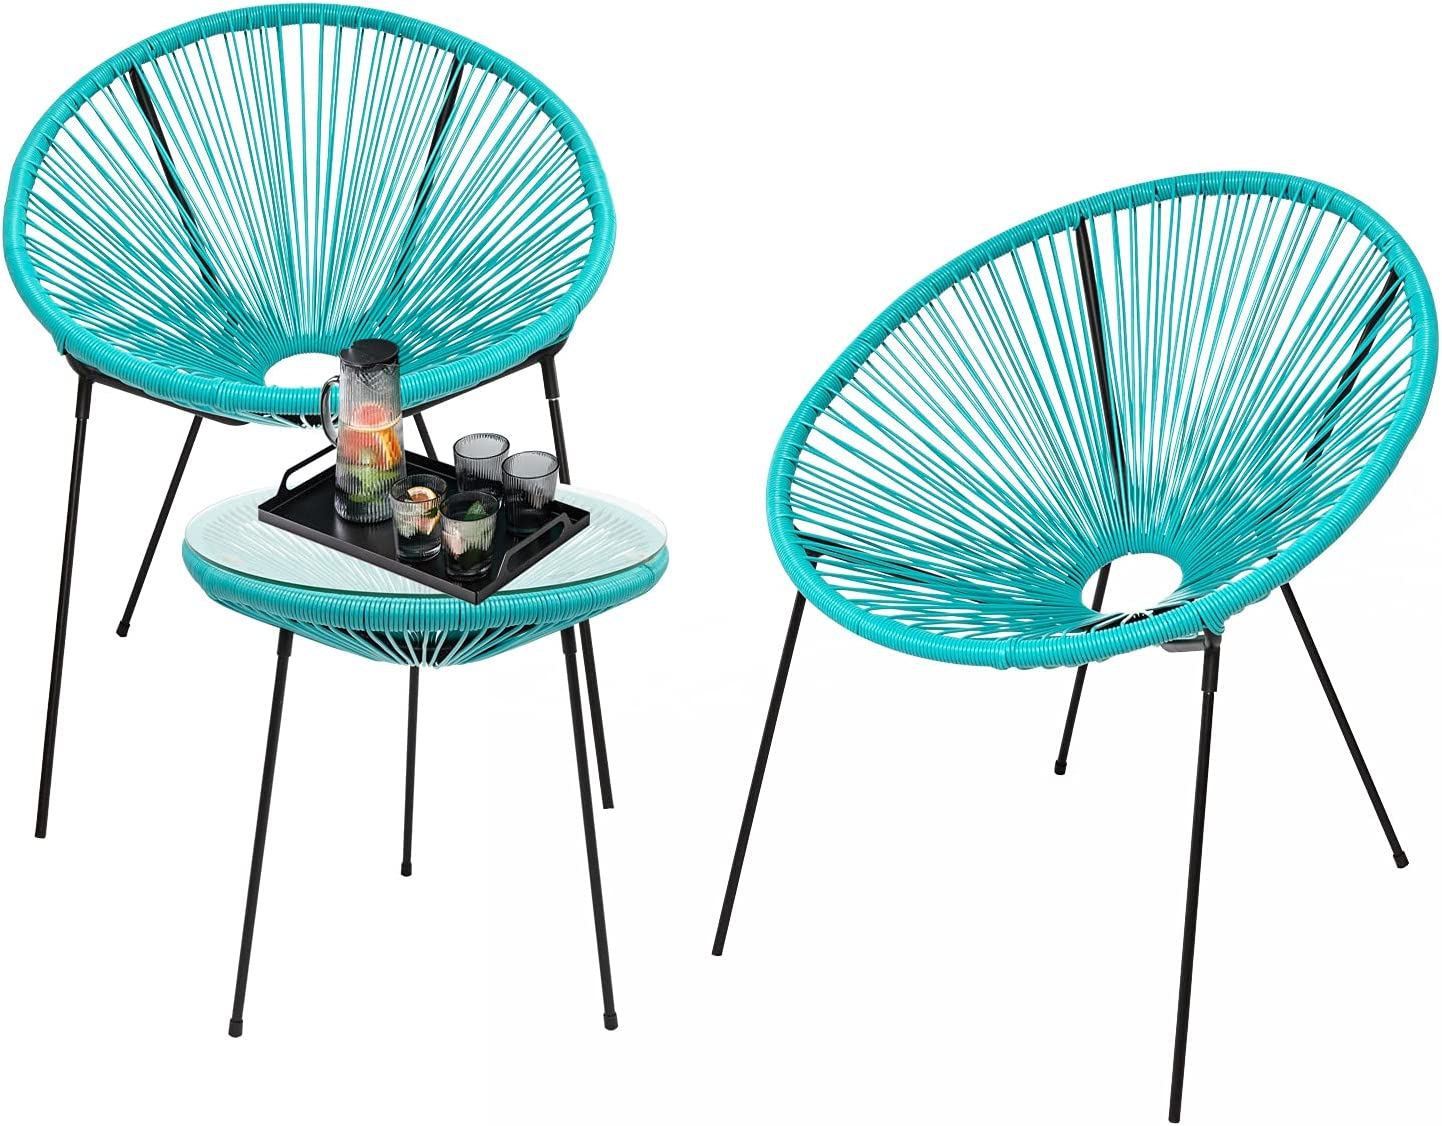 3-Piece Outdoor Seating All items free shipping Acapulco All-Weather Furnit Chair Patio Great interest